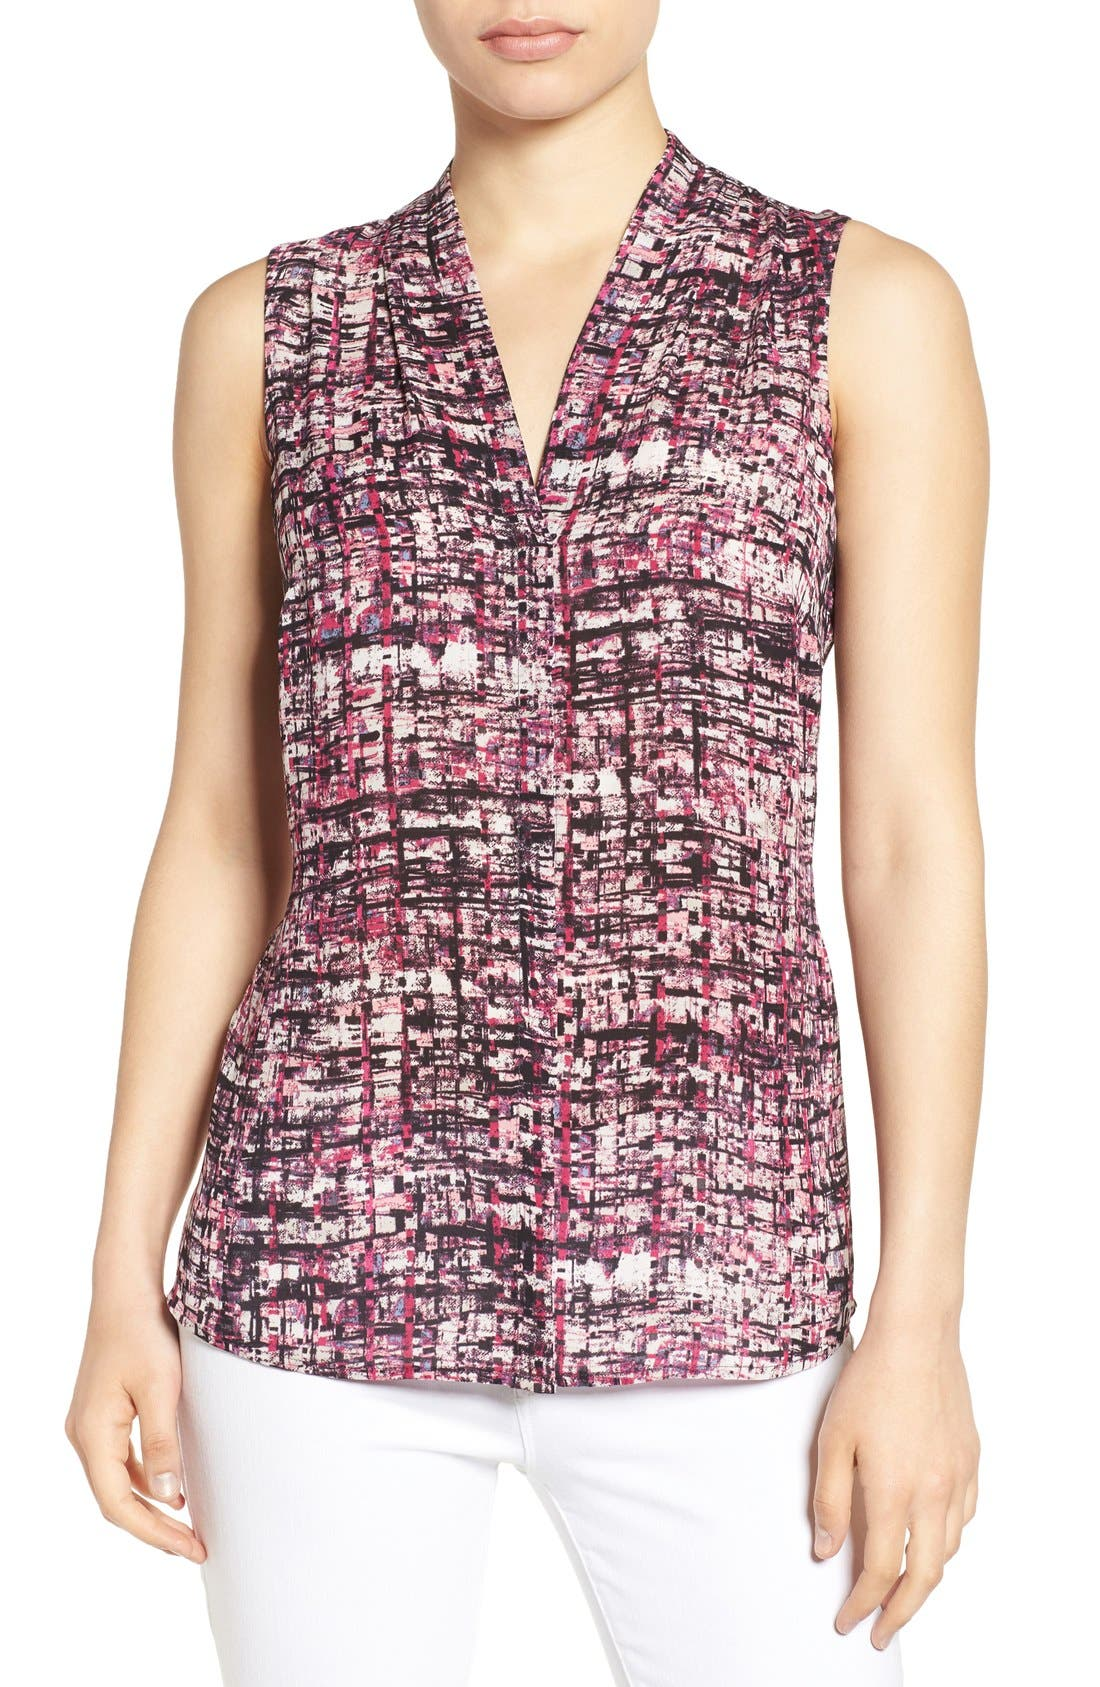 Alternate Image 1 Selected - NIC+ZOE 'Painted Plaid' Print V-Neck Sleeveless Top